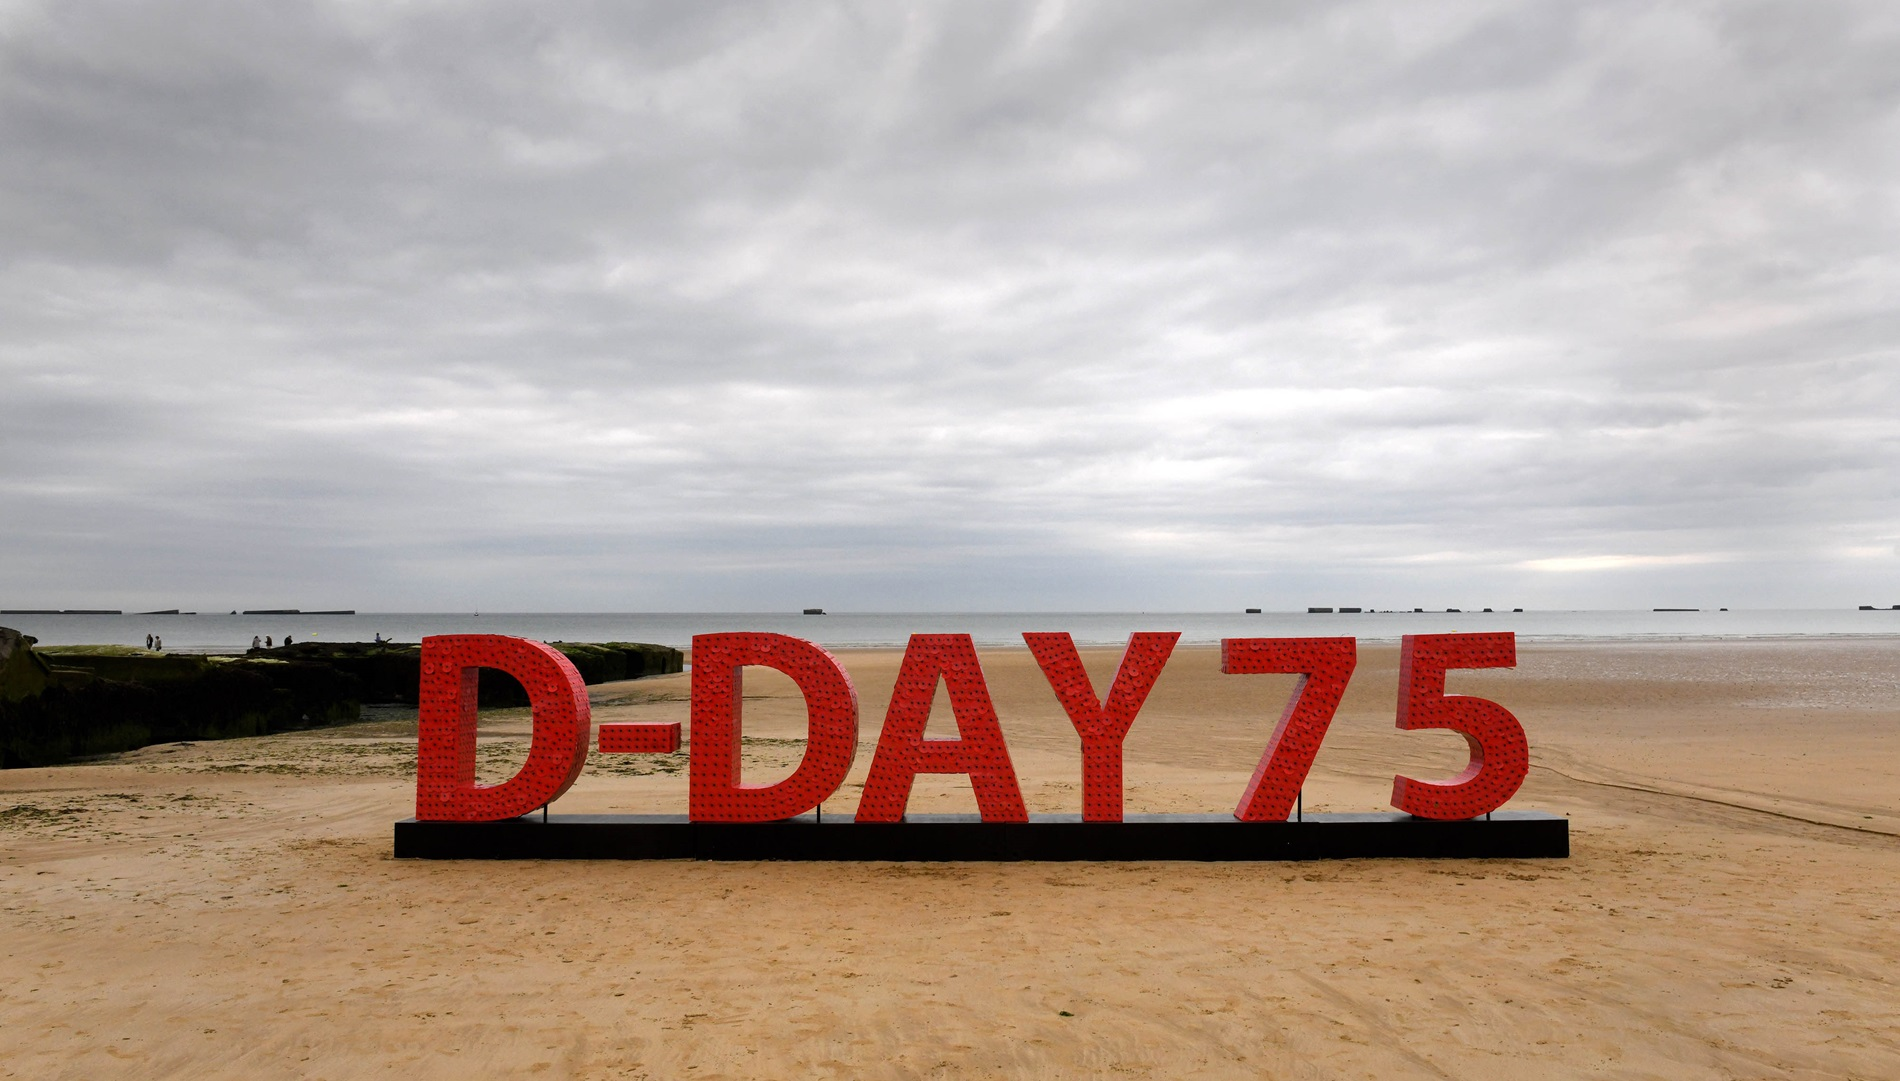 D-Day poppy installation on the beaches in Normandy